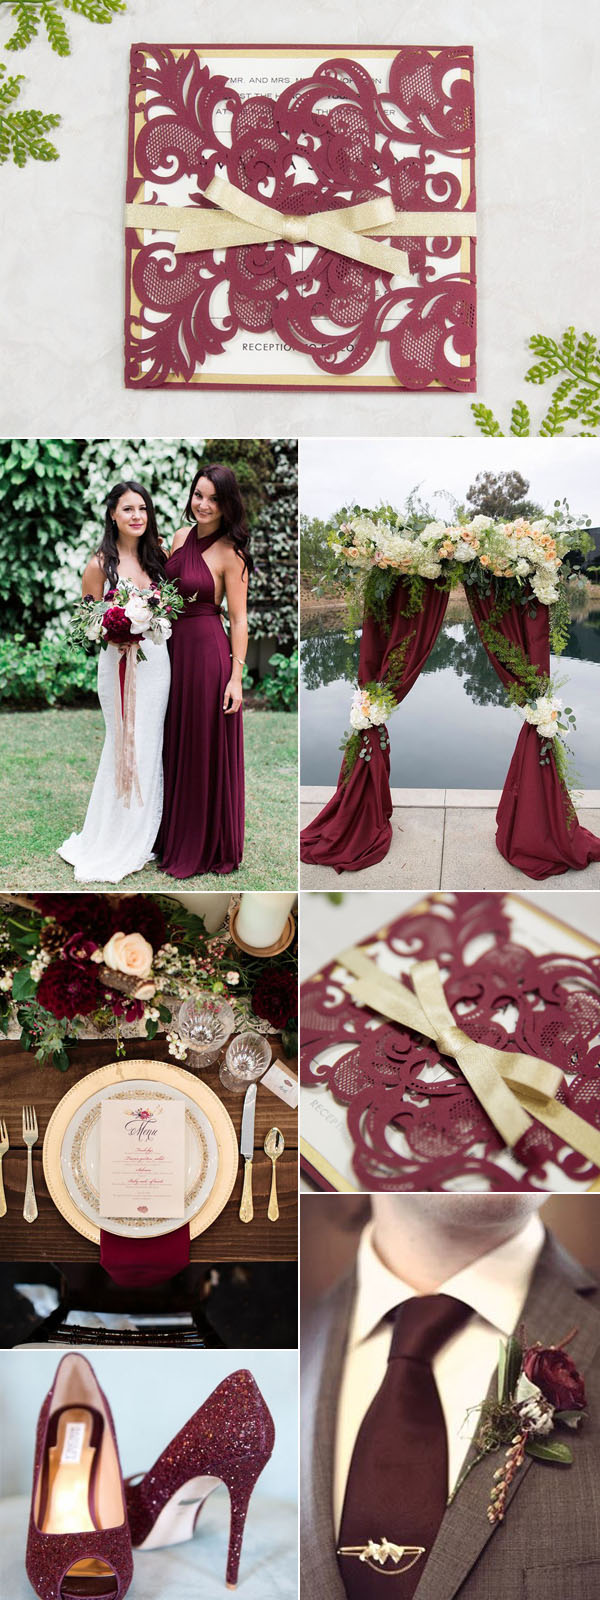 10 Most Popular Wedding Invitations From SW 2017 New